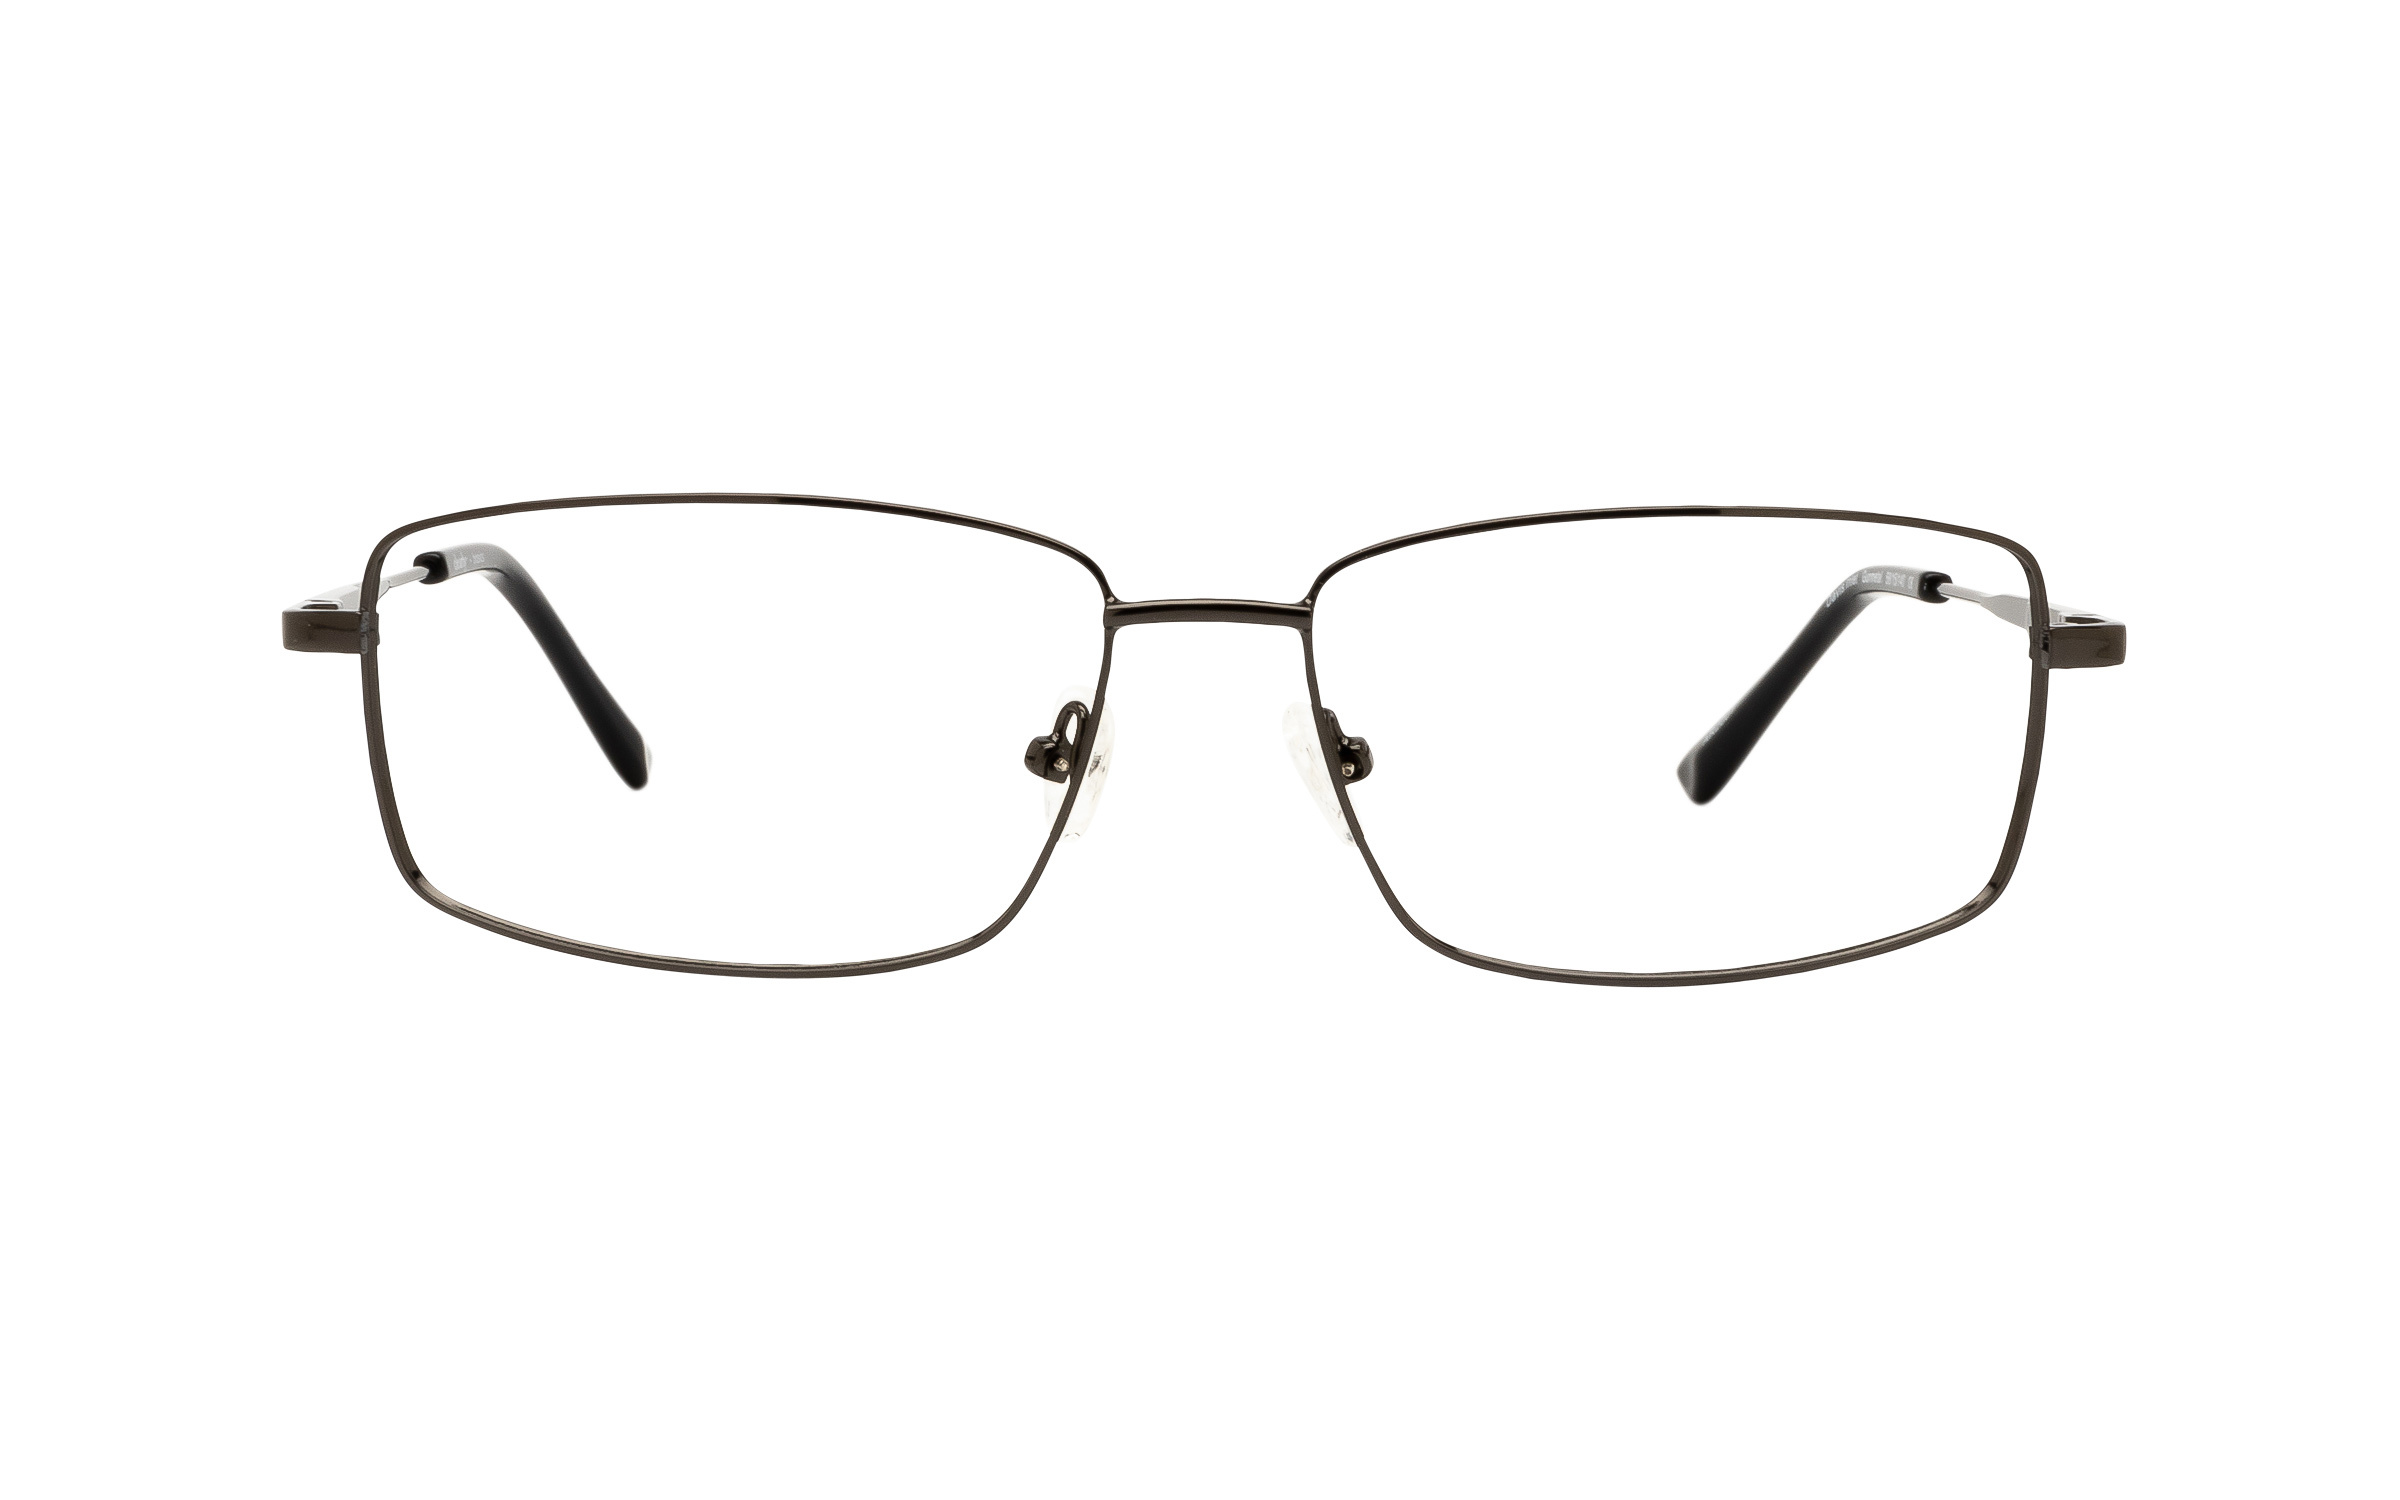 http://www.coastal.com/ - Clearly Basics Davis Inlet CLS059 C02 (58) Eyeglasses and Frame in Gunmetal Grey – Online Coastal